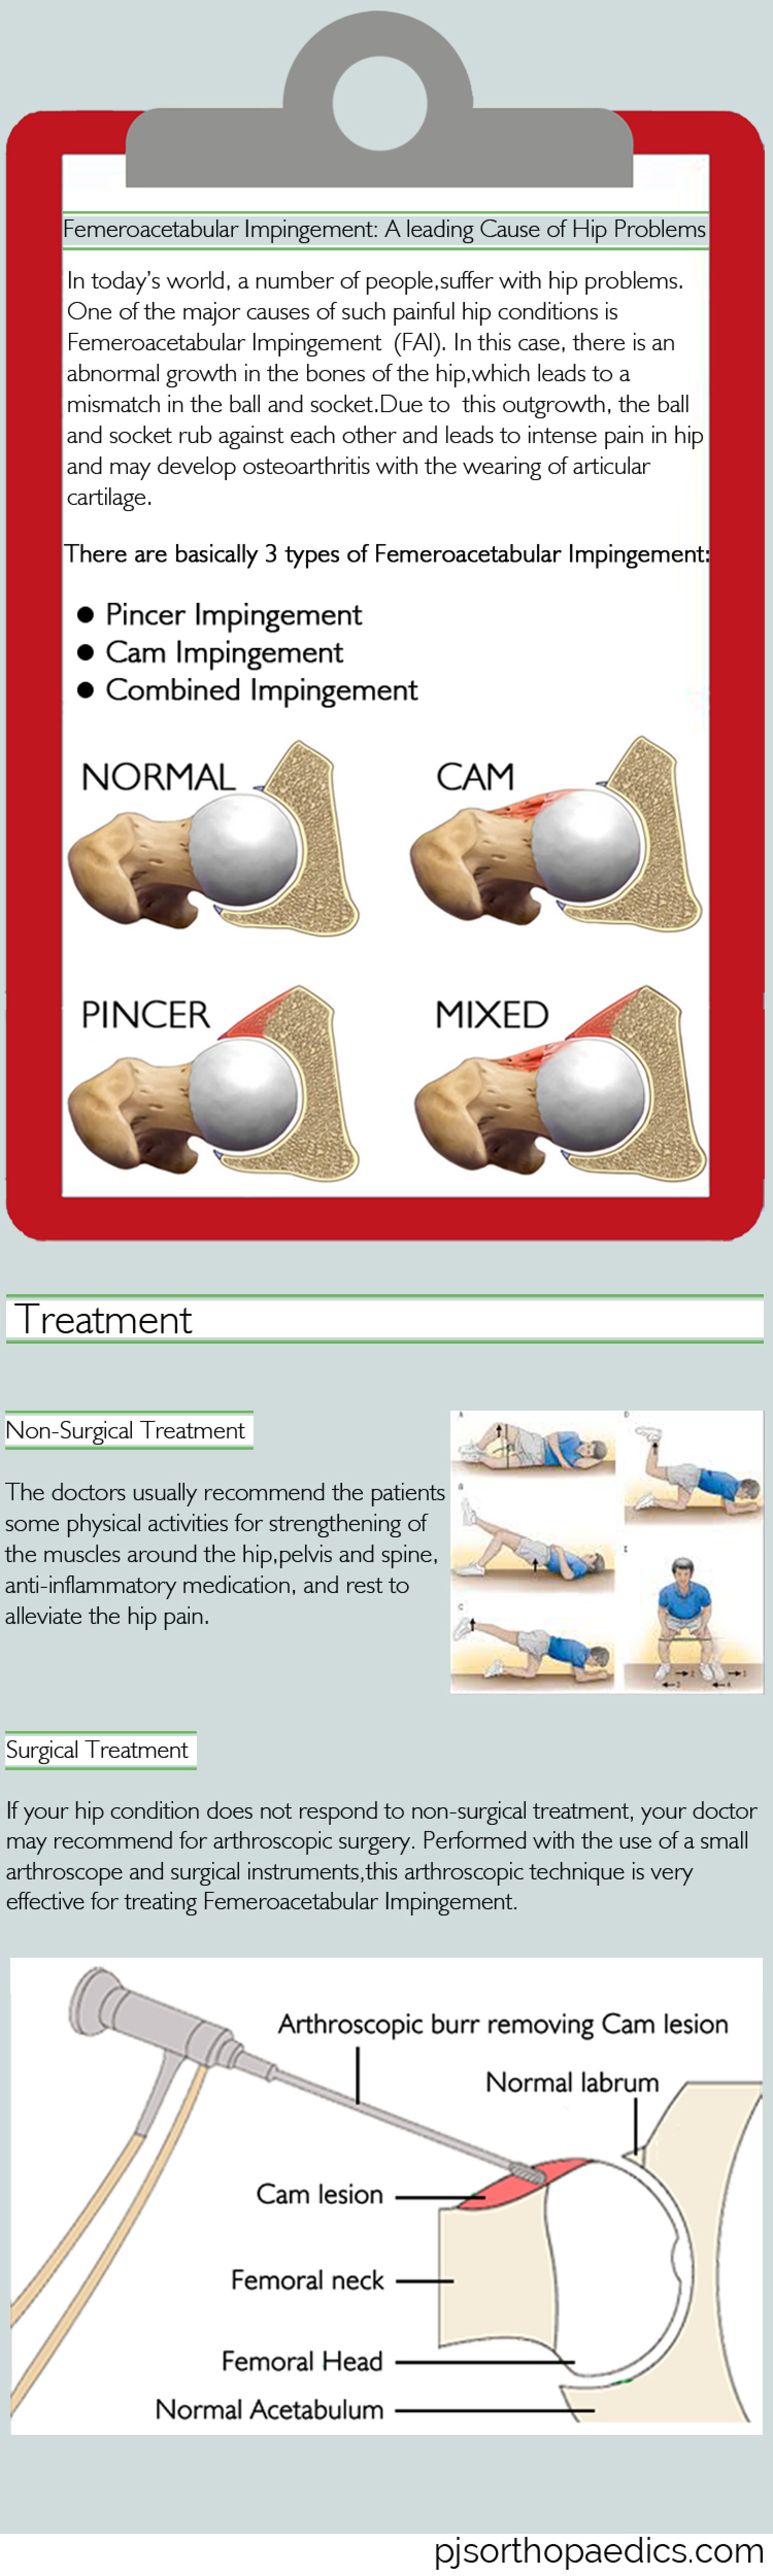 Femeroacetabular Impingement: A leading Cause of Hip Problems Infographic